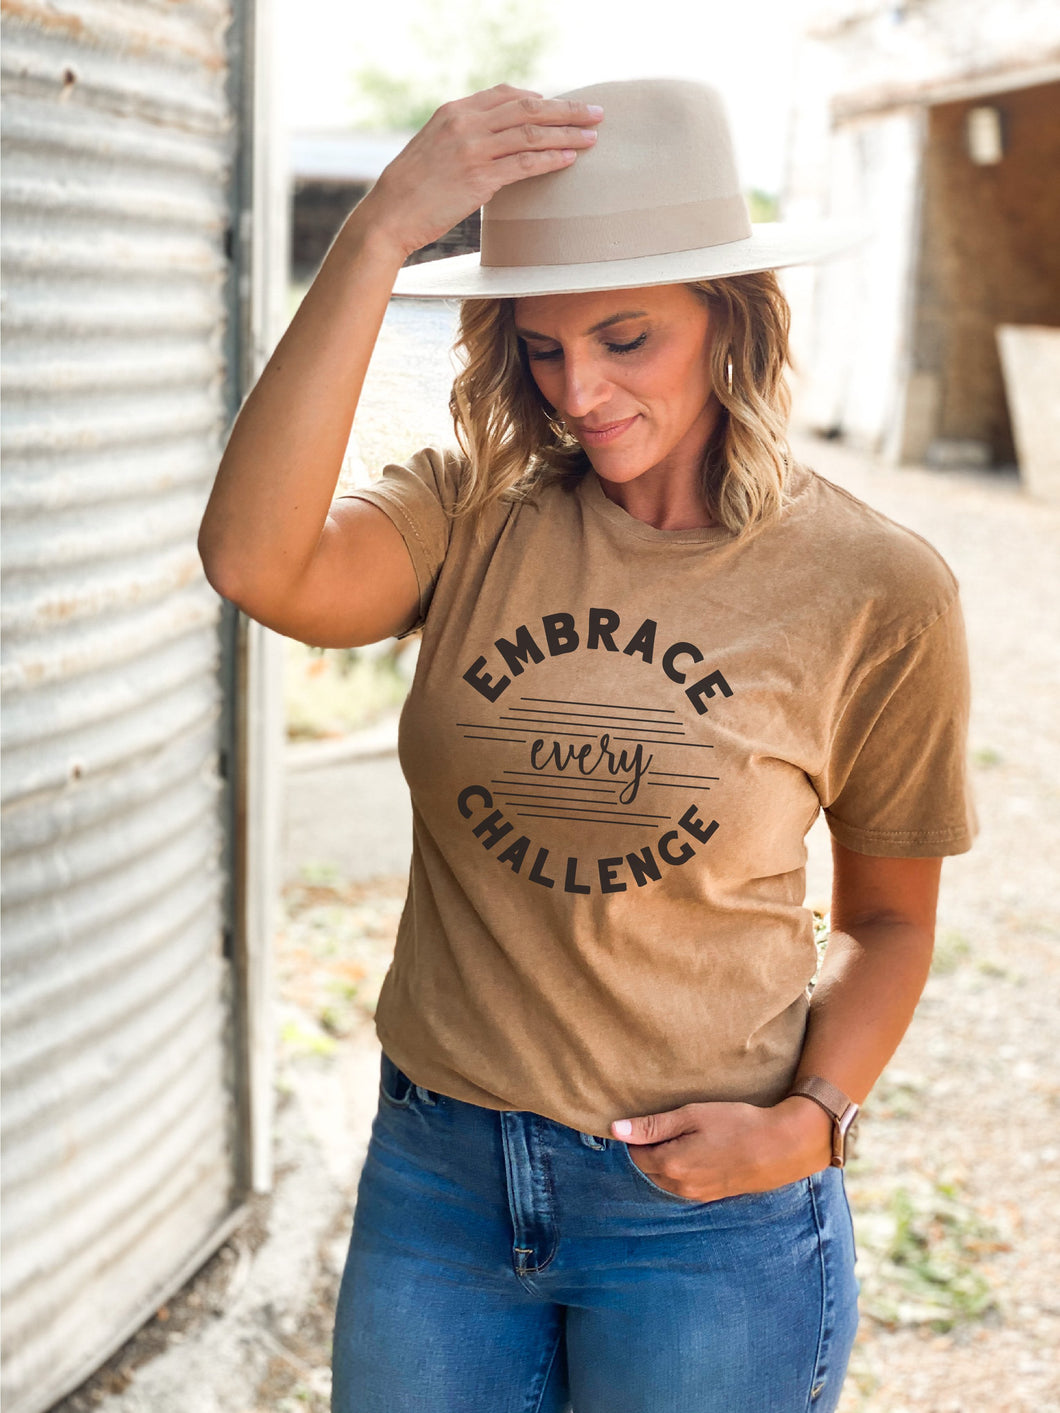 Embrace every challenge vintage wash tee Short sleeve miscellaneous tee Lane 7 15004 Camel